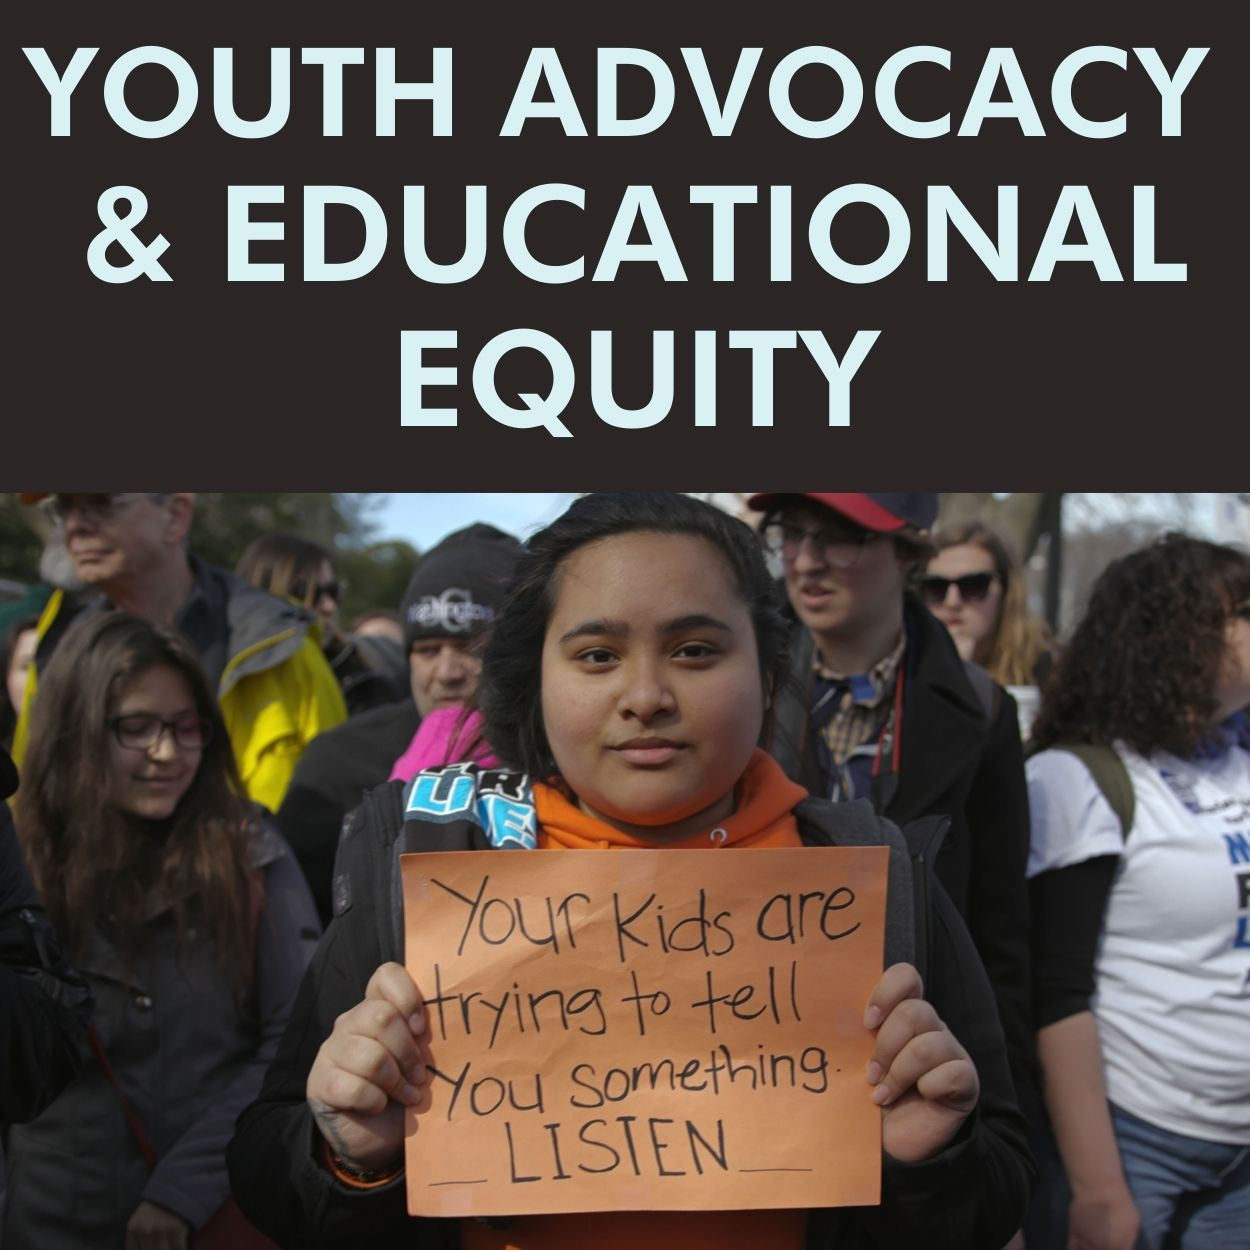 YOUTH ADVOCACY & EDUCATIONAL EQUITY (4)